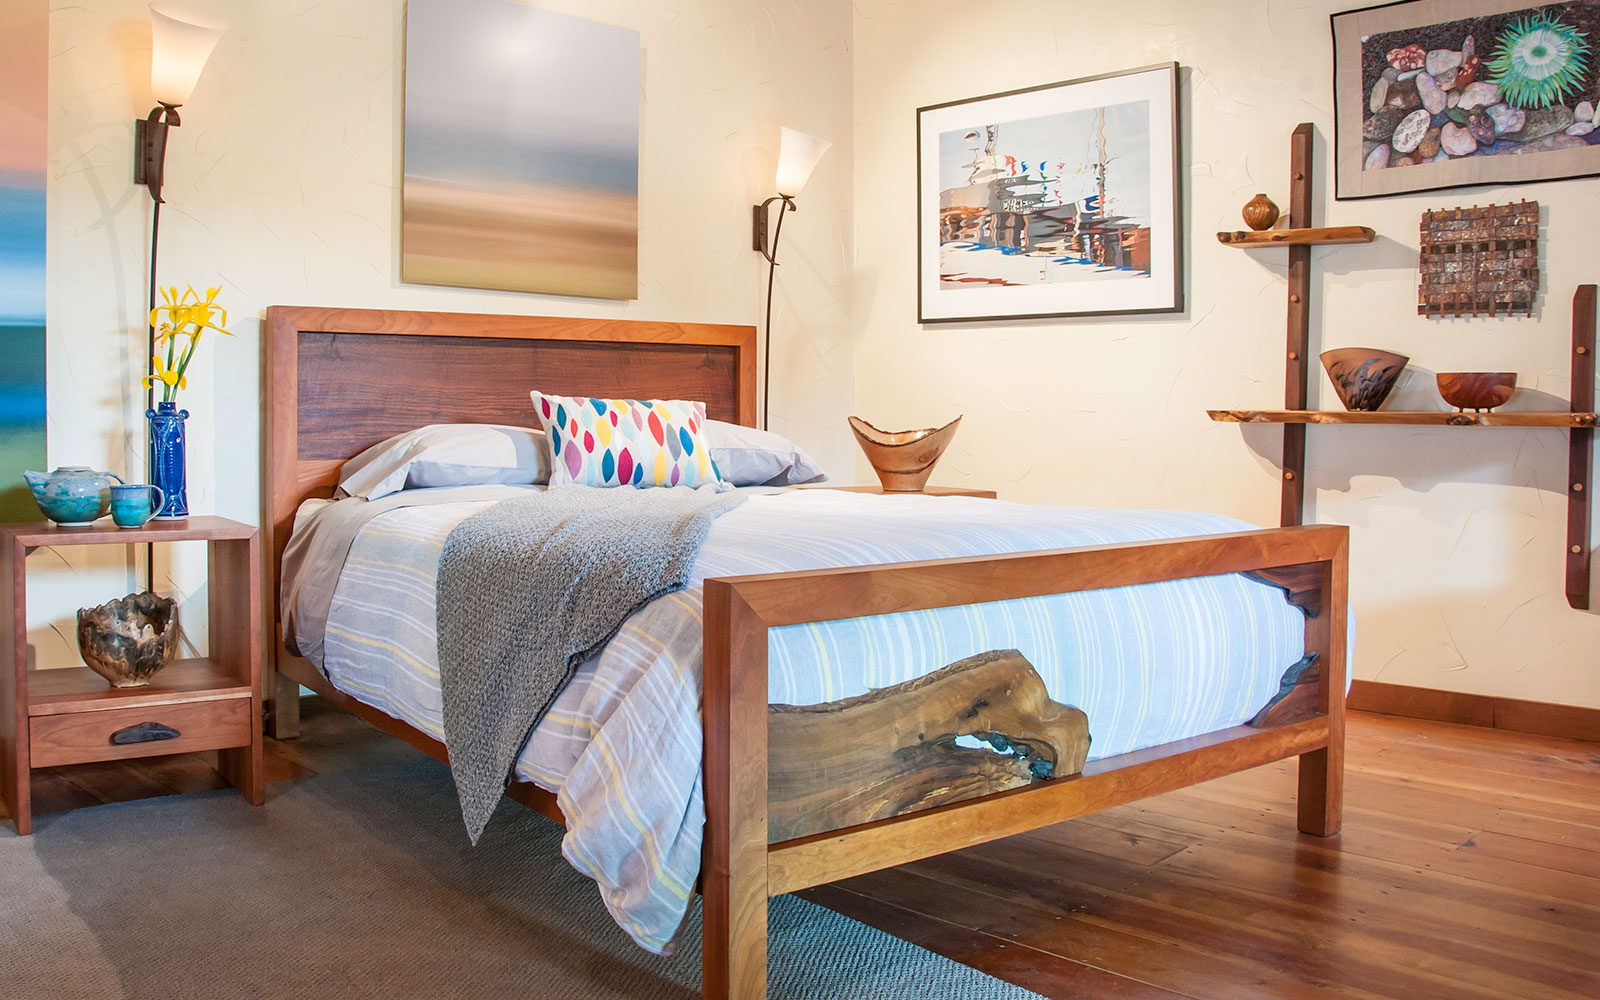 New San Francisco Bed Ken Periat